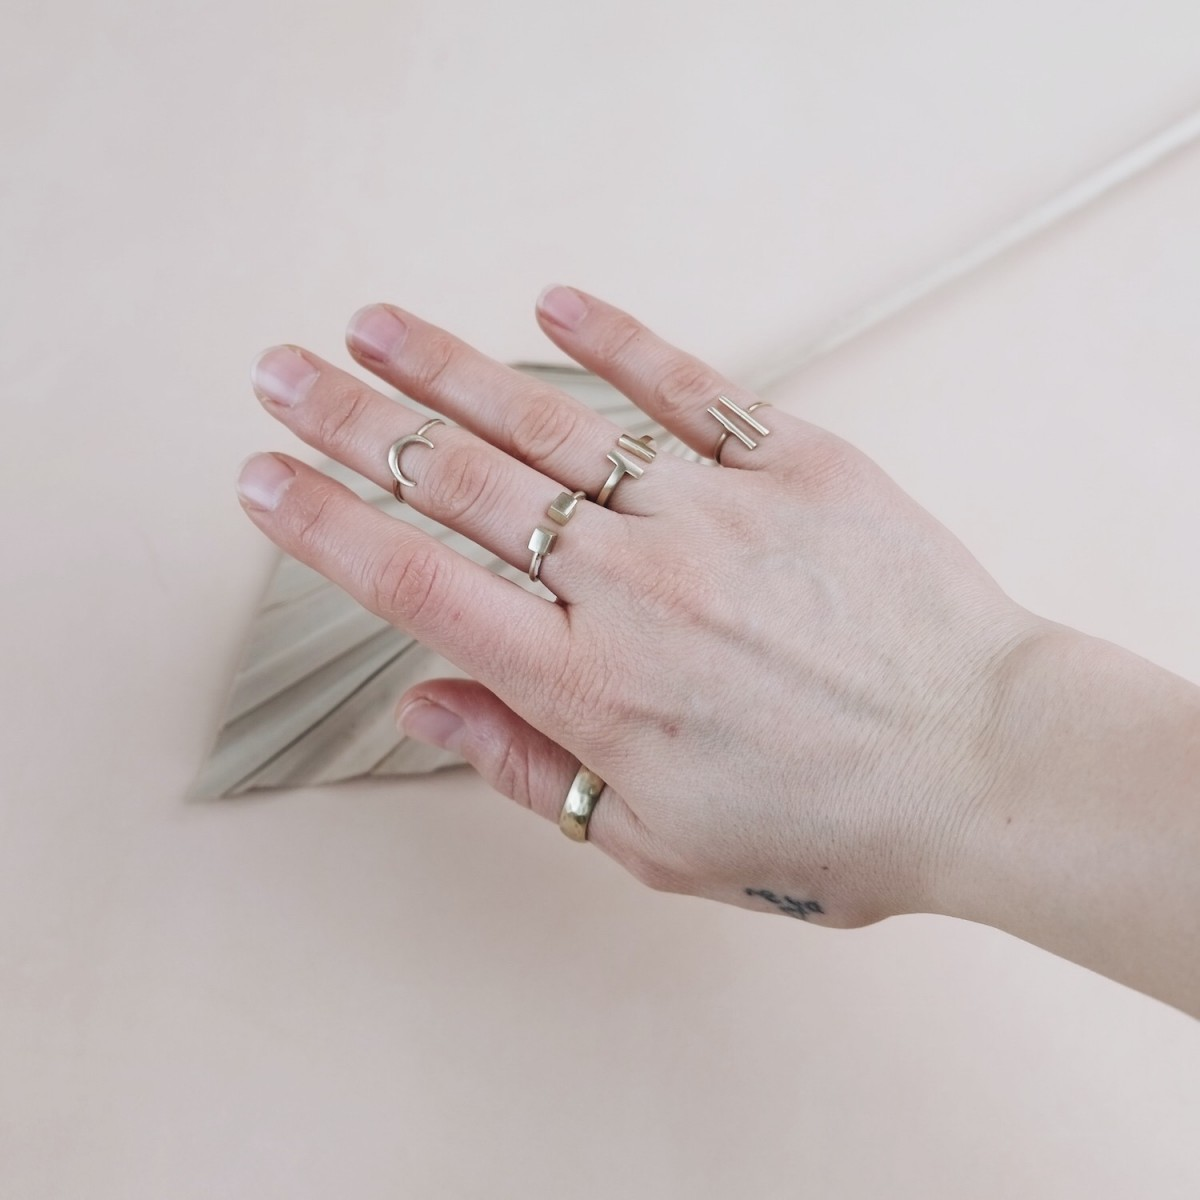 BRASSCAKE // Tiny Moon Ring